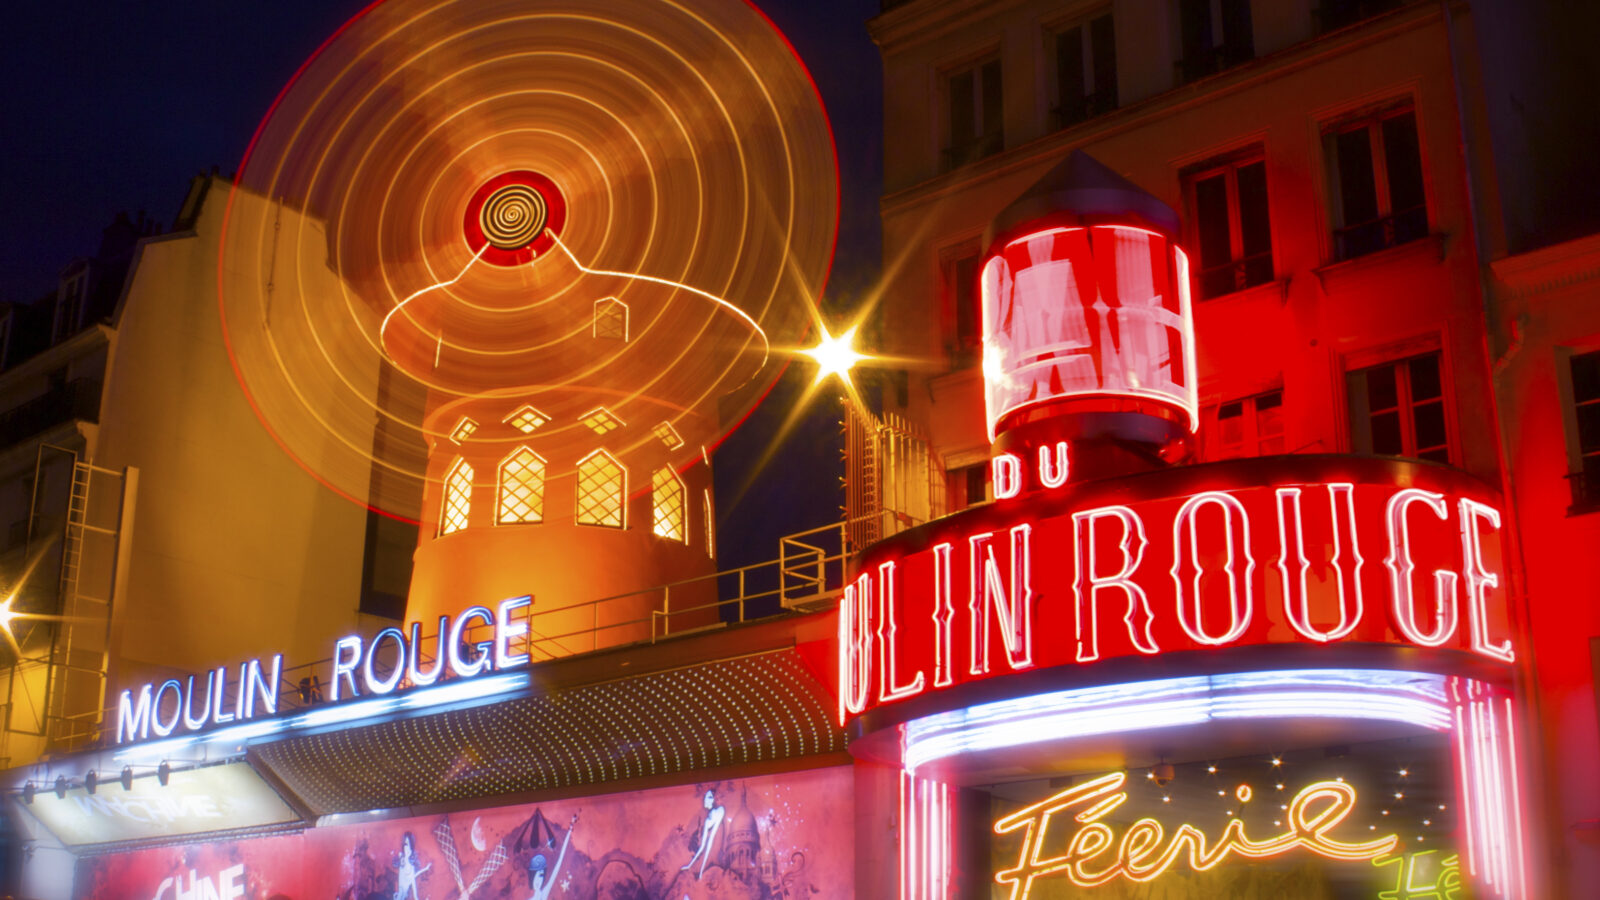 The Moulin Rouge, the famous French cabaret (Photo: Franck Vervial)